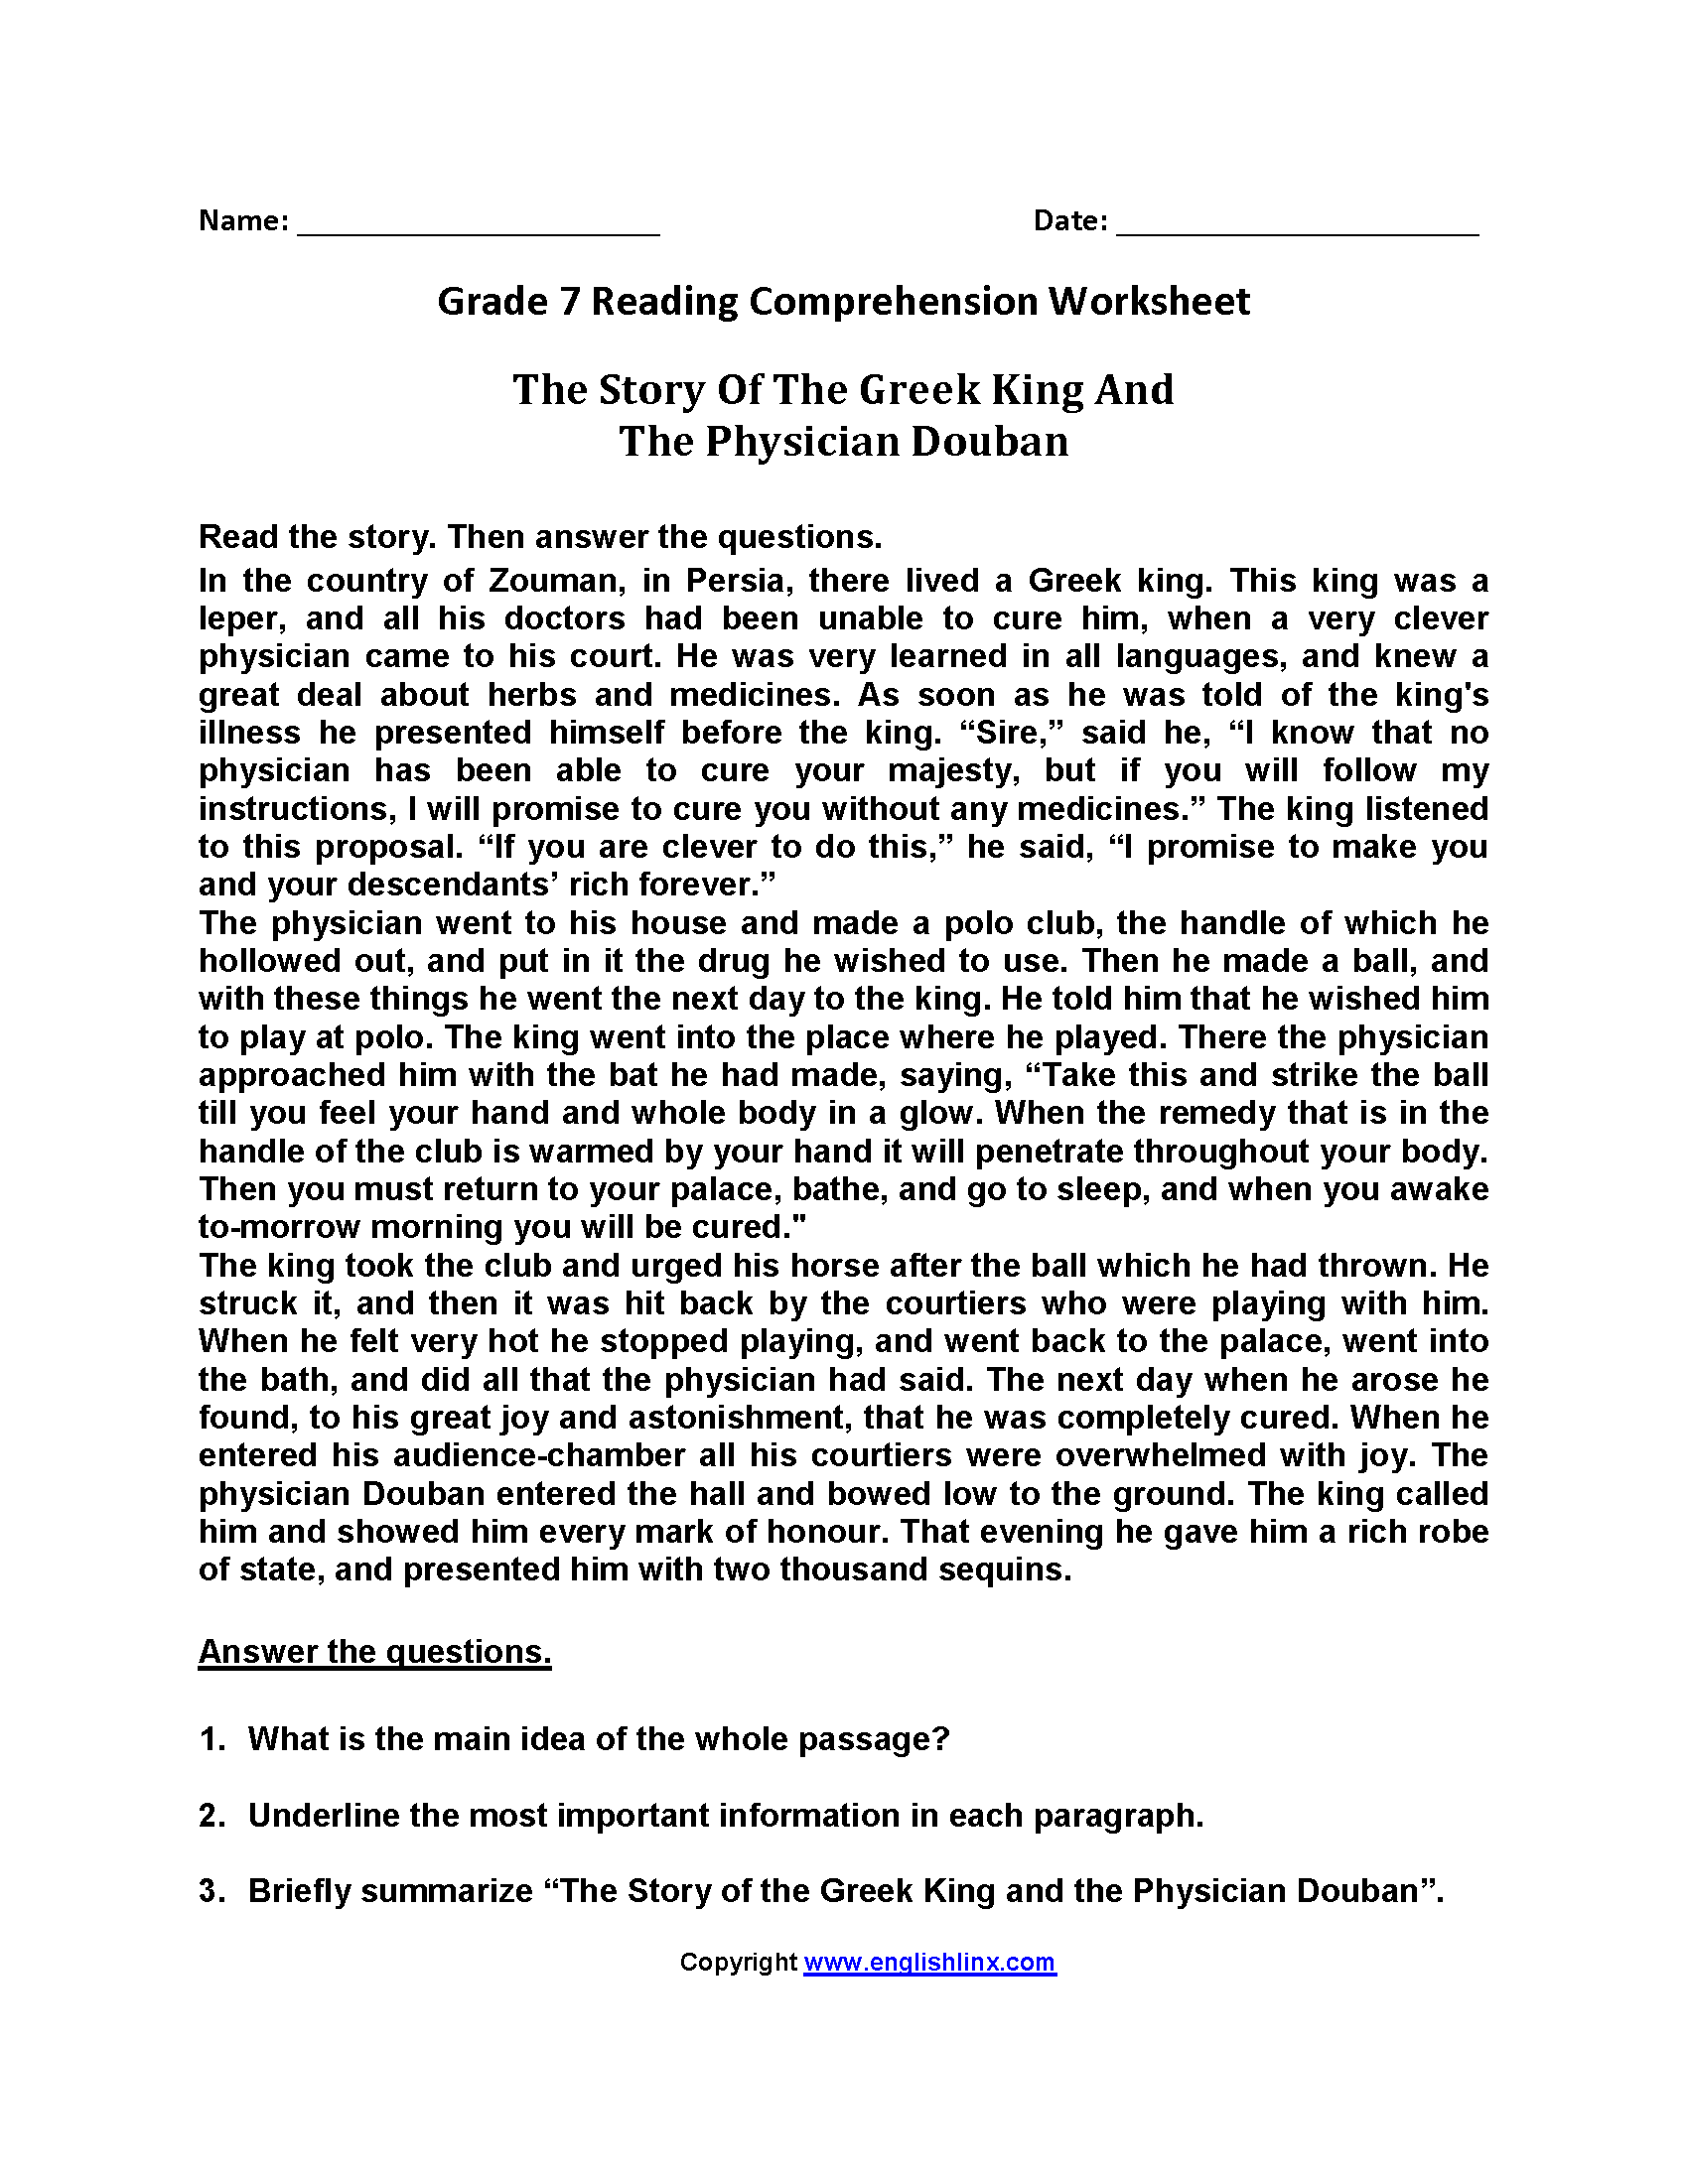 Reading Comprehension Worksheets 7th Grade Multiple Choice